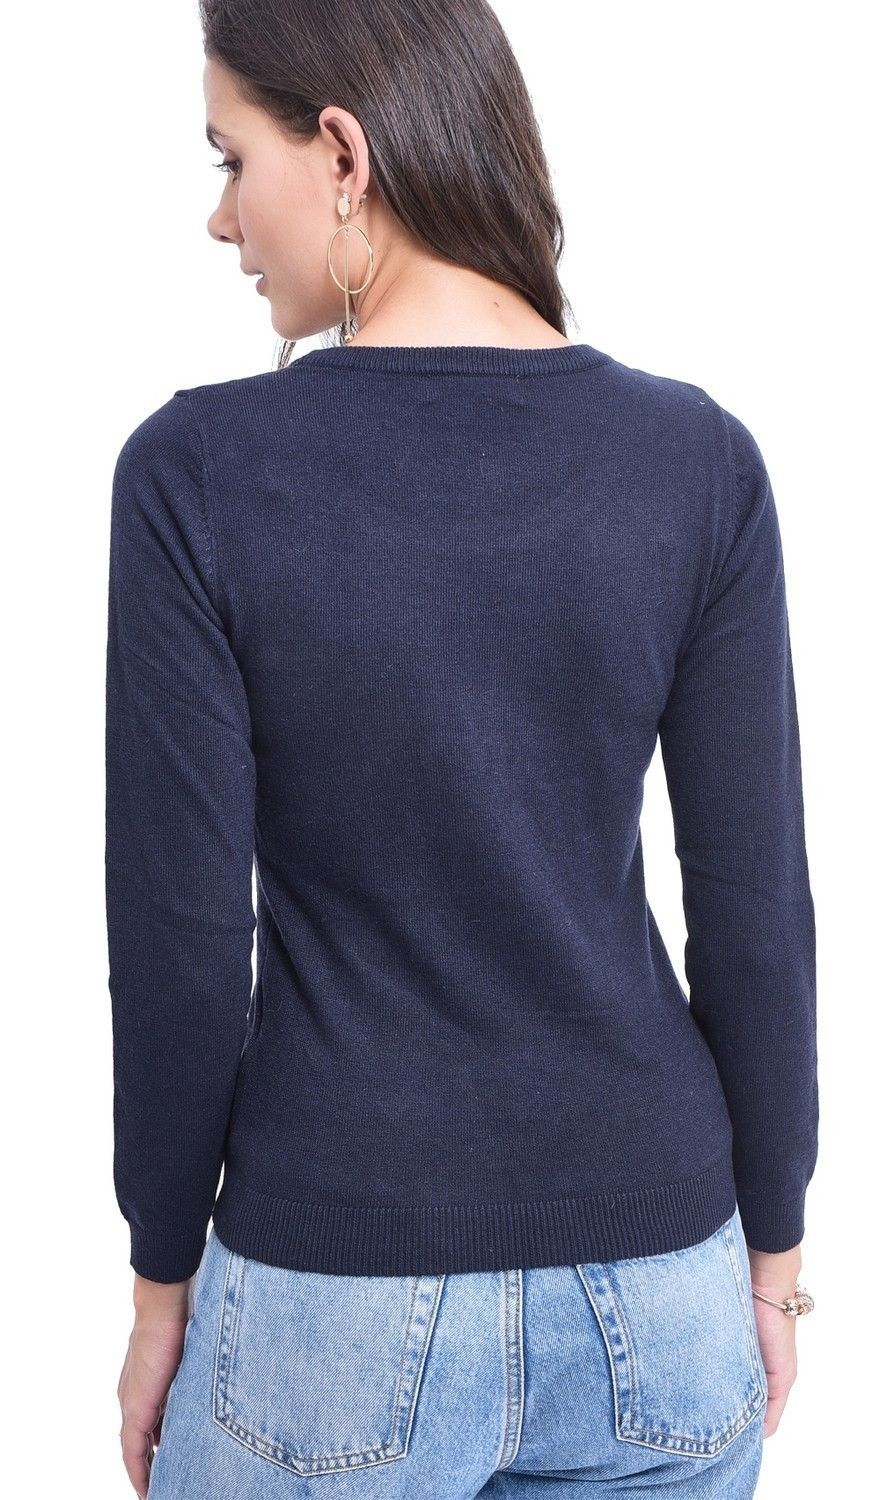 C&JO Round Neck Sweater with Shoulder Button Detail in Navy